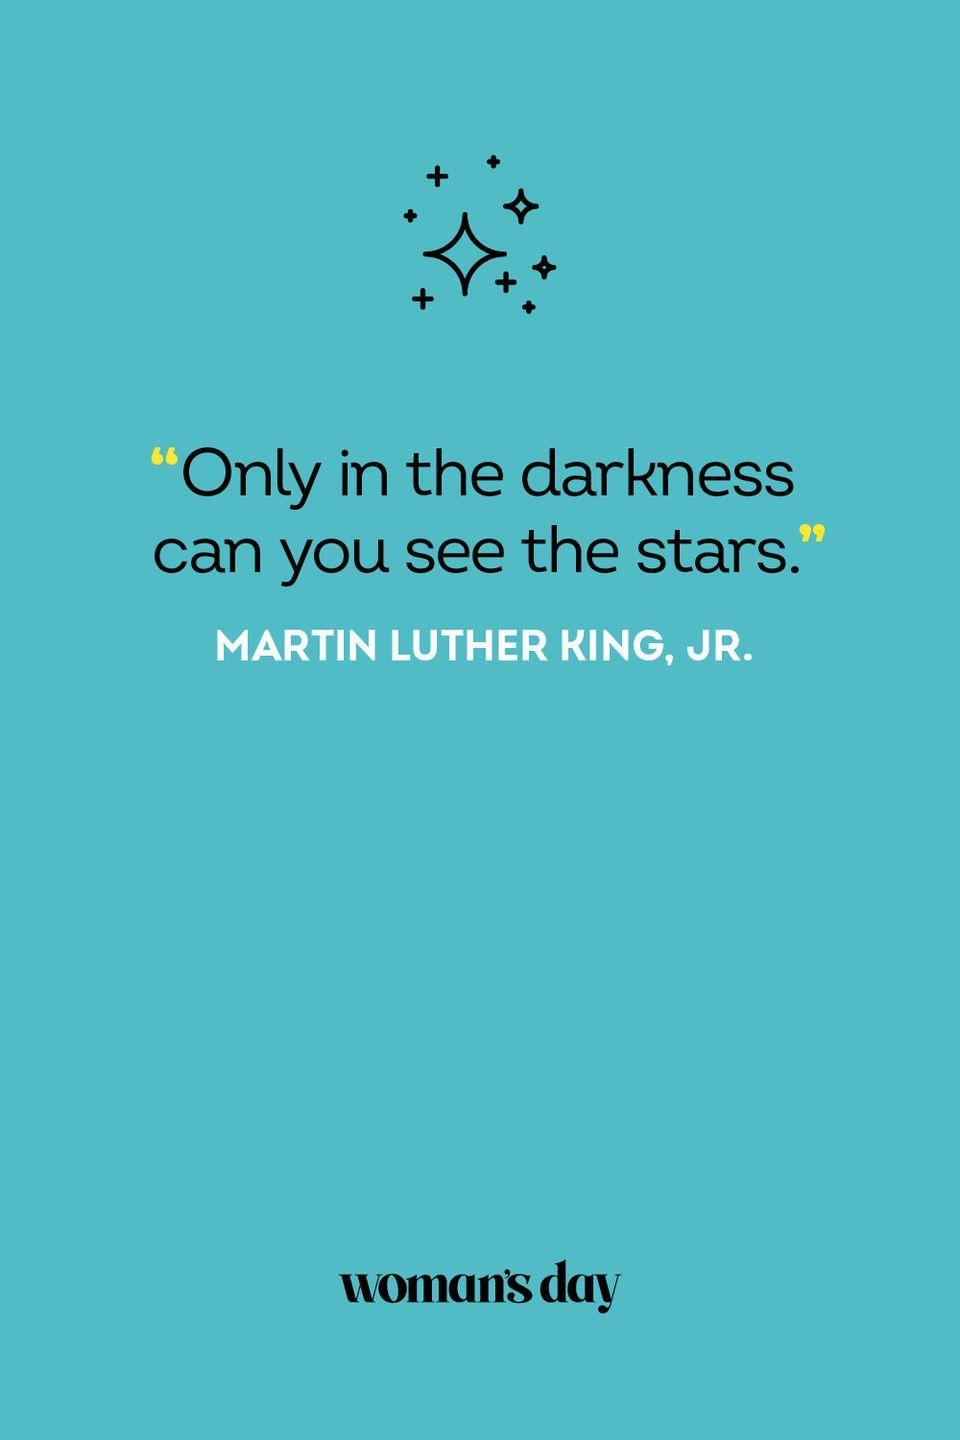 <p>Only in the darkness can you see the stars.</p>